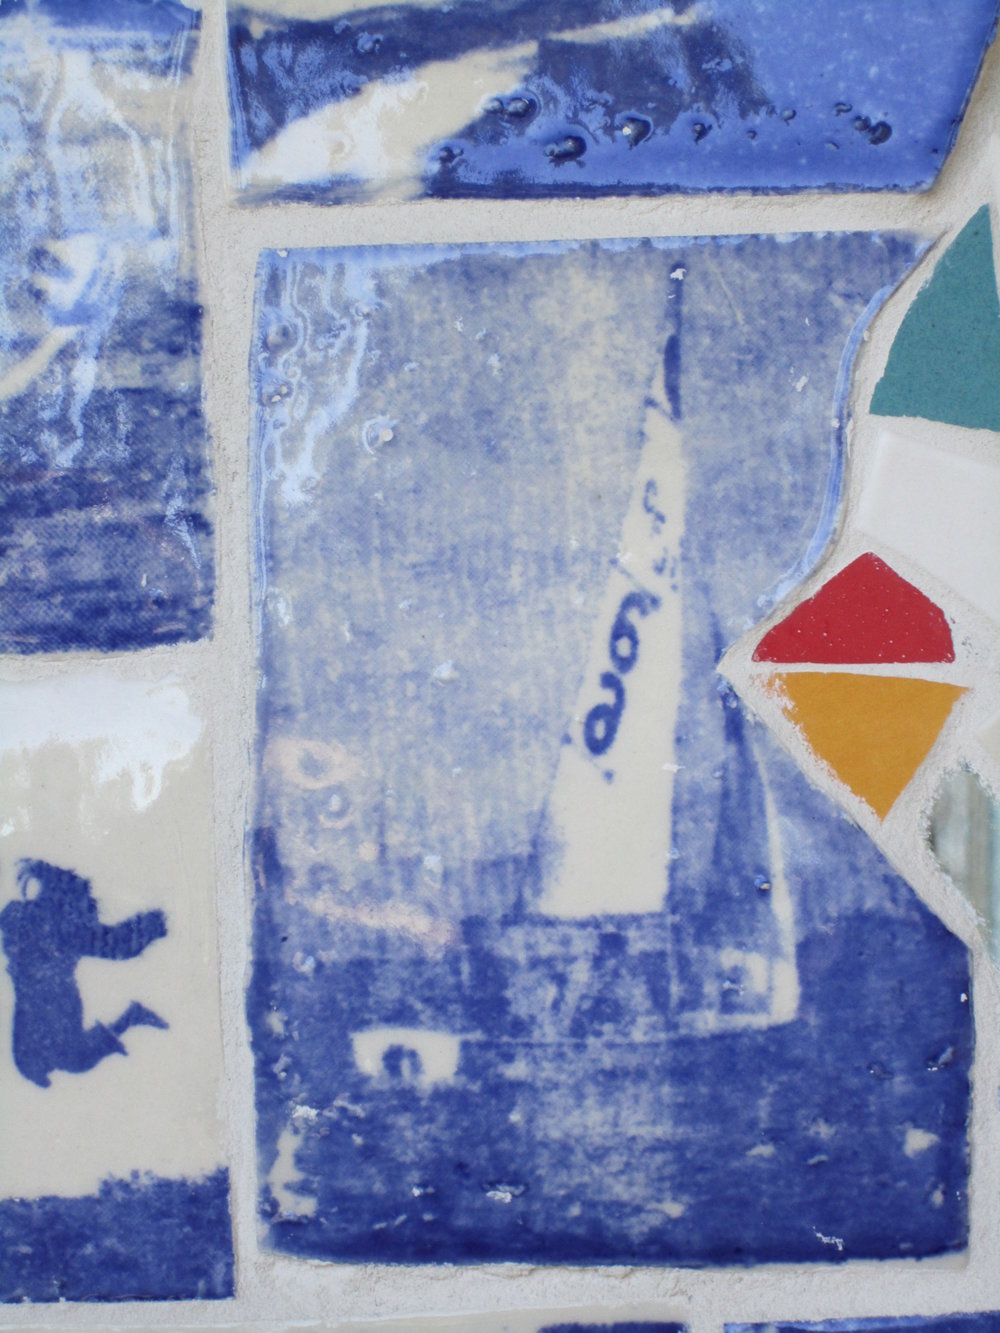 details of photo tiles on Student Activities mosaic